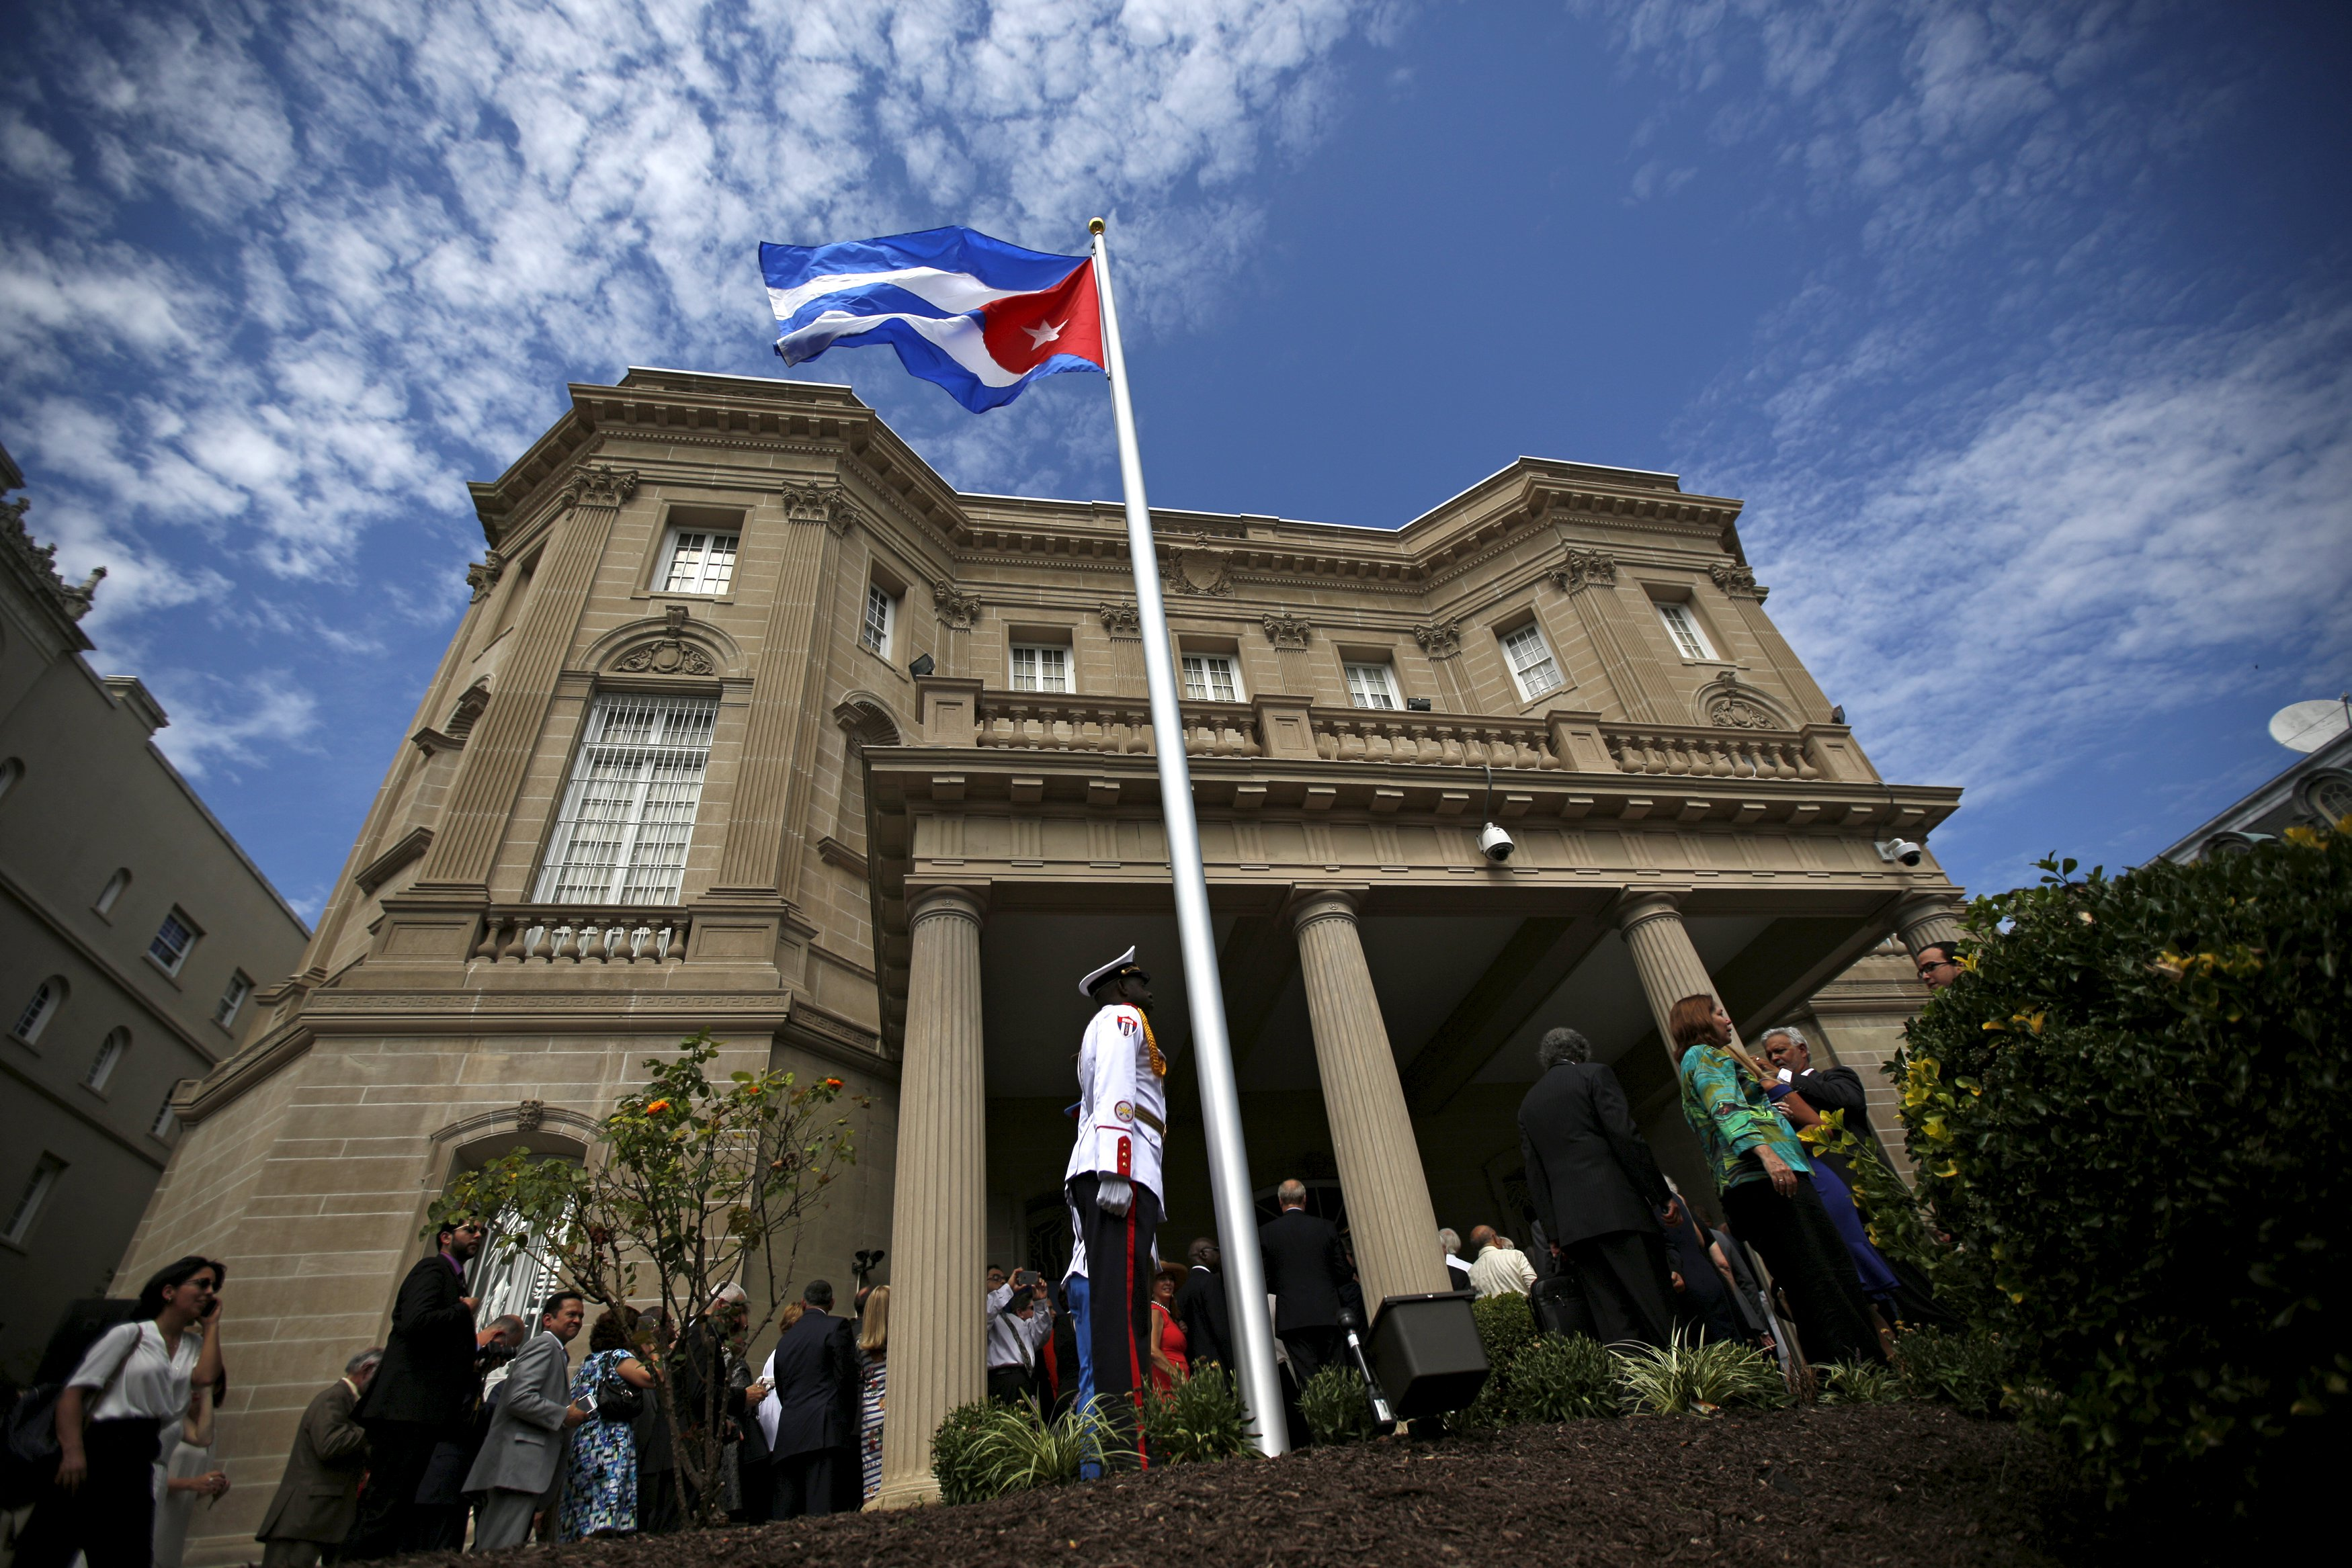 A guard stands in front of the new Cuban embassy in Washington after officials raised the national flag in a ceremony, July 20, 2015. The Cuban flag was raised over Havanau2019s embassy in Washington on Monday for the first time in 54 years as the United States and Cuba formally restored relations, opening a new chapter of engagement between the former Cold War foes. Photo: Reuters